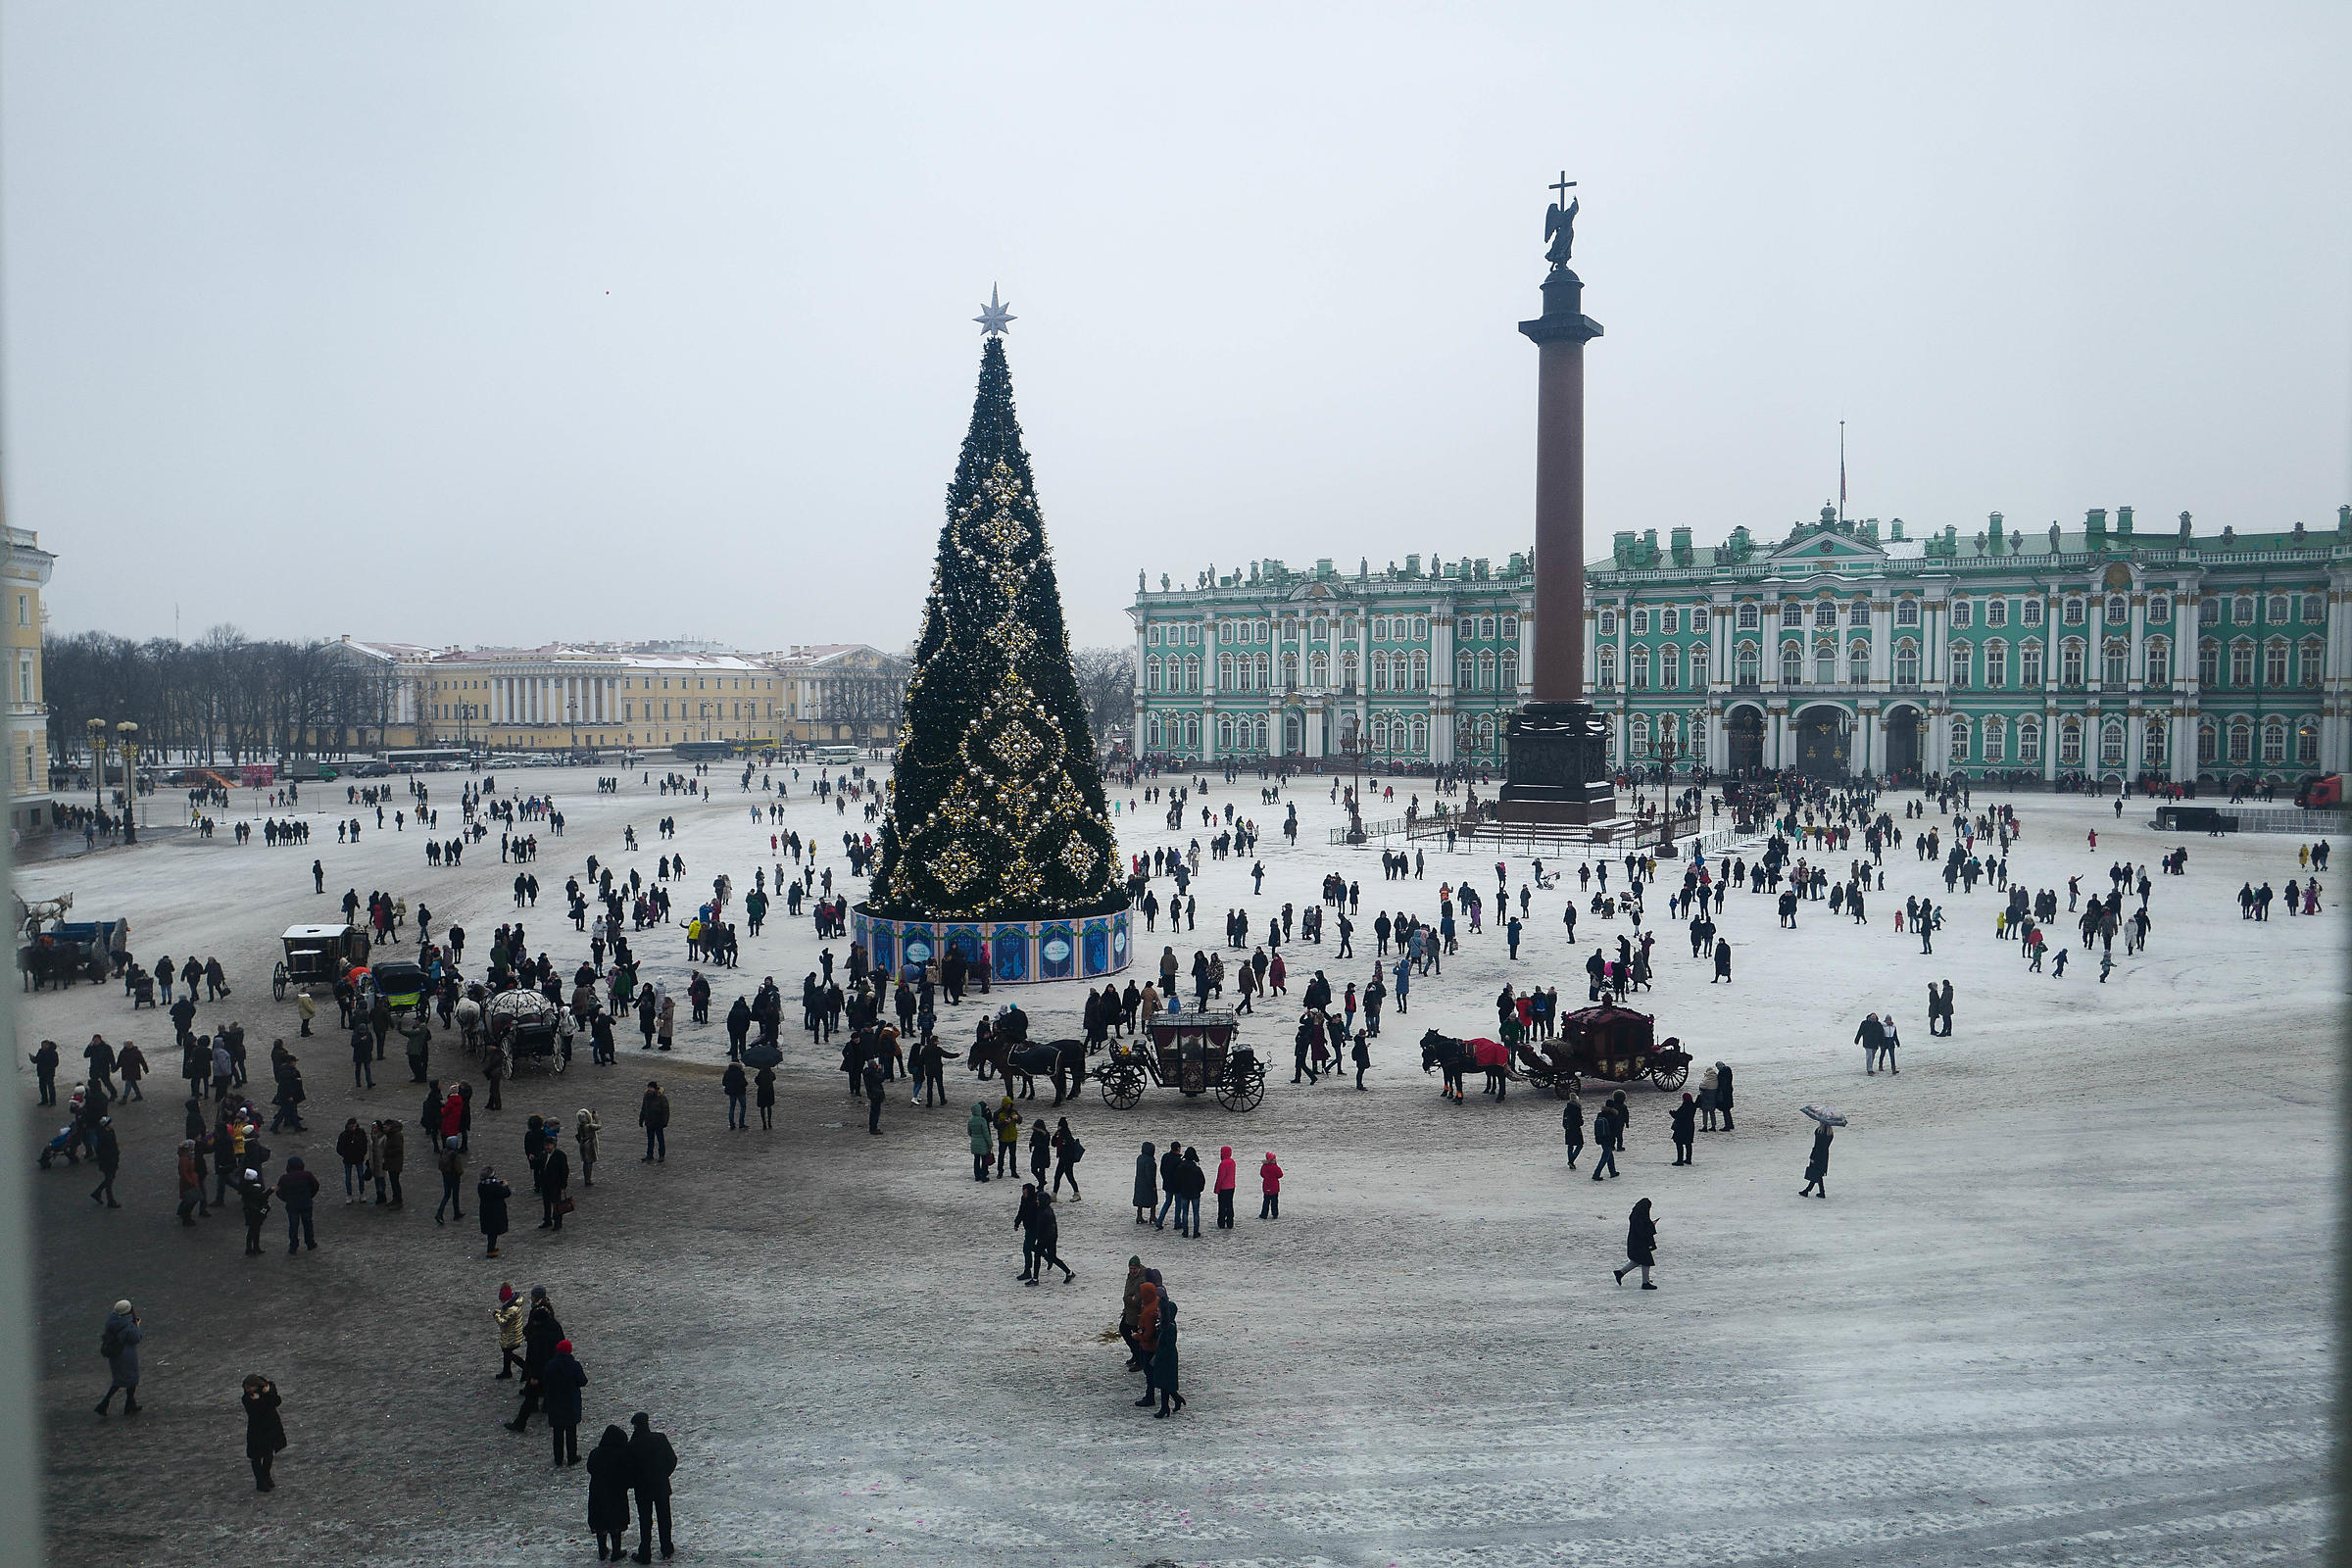 View from a window in The Hermitage looking at the Winter Palace, St Petersburg